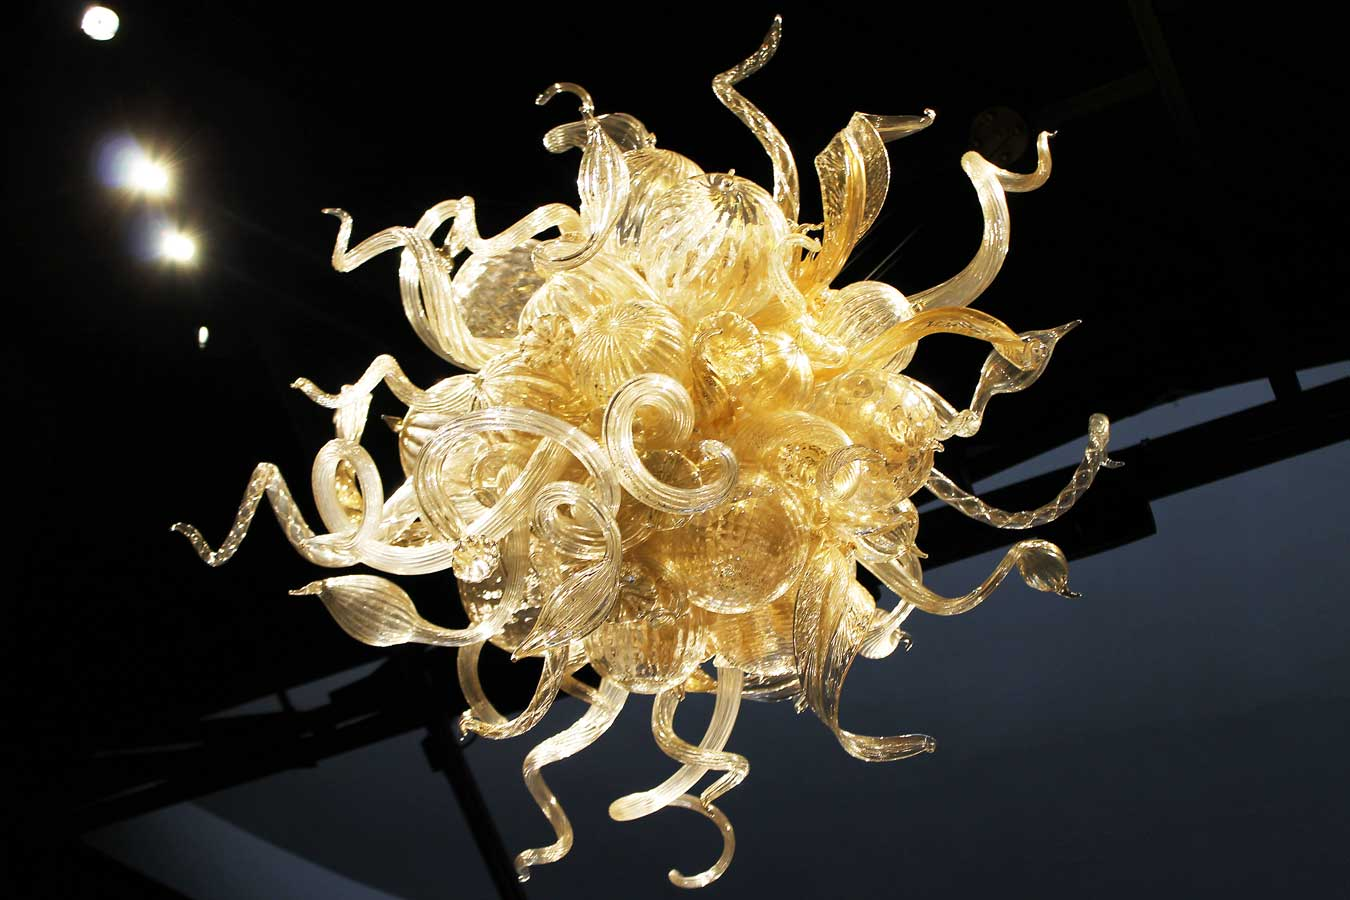 """Lily Gold Chandelier"" by Dale Chihuly (at the Fort Wayne Museum of Art) // The Weekend Getaway You've Overlooked: Visit Fort Wayne, Indiana [via Wading in Big Shoes] // Located equidistantly from Chicago, Cincinnati, and Detroit, Fort Wayne, Indiana is a fun midwest destination that captures a perfect blend of city, nature, and local flavors! See what I experienced on my trip to Fort Wayne and learn what makes Indiana's second-largest city the perfect spot for a weekend getaway."